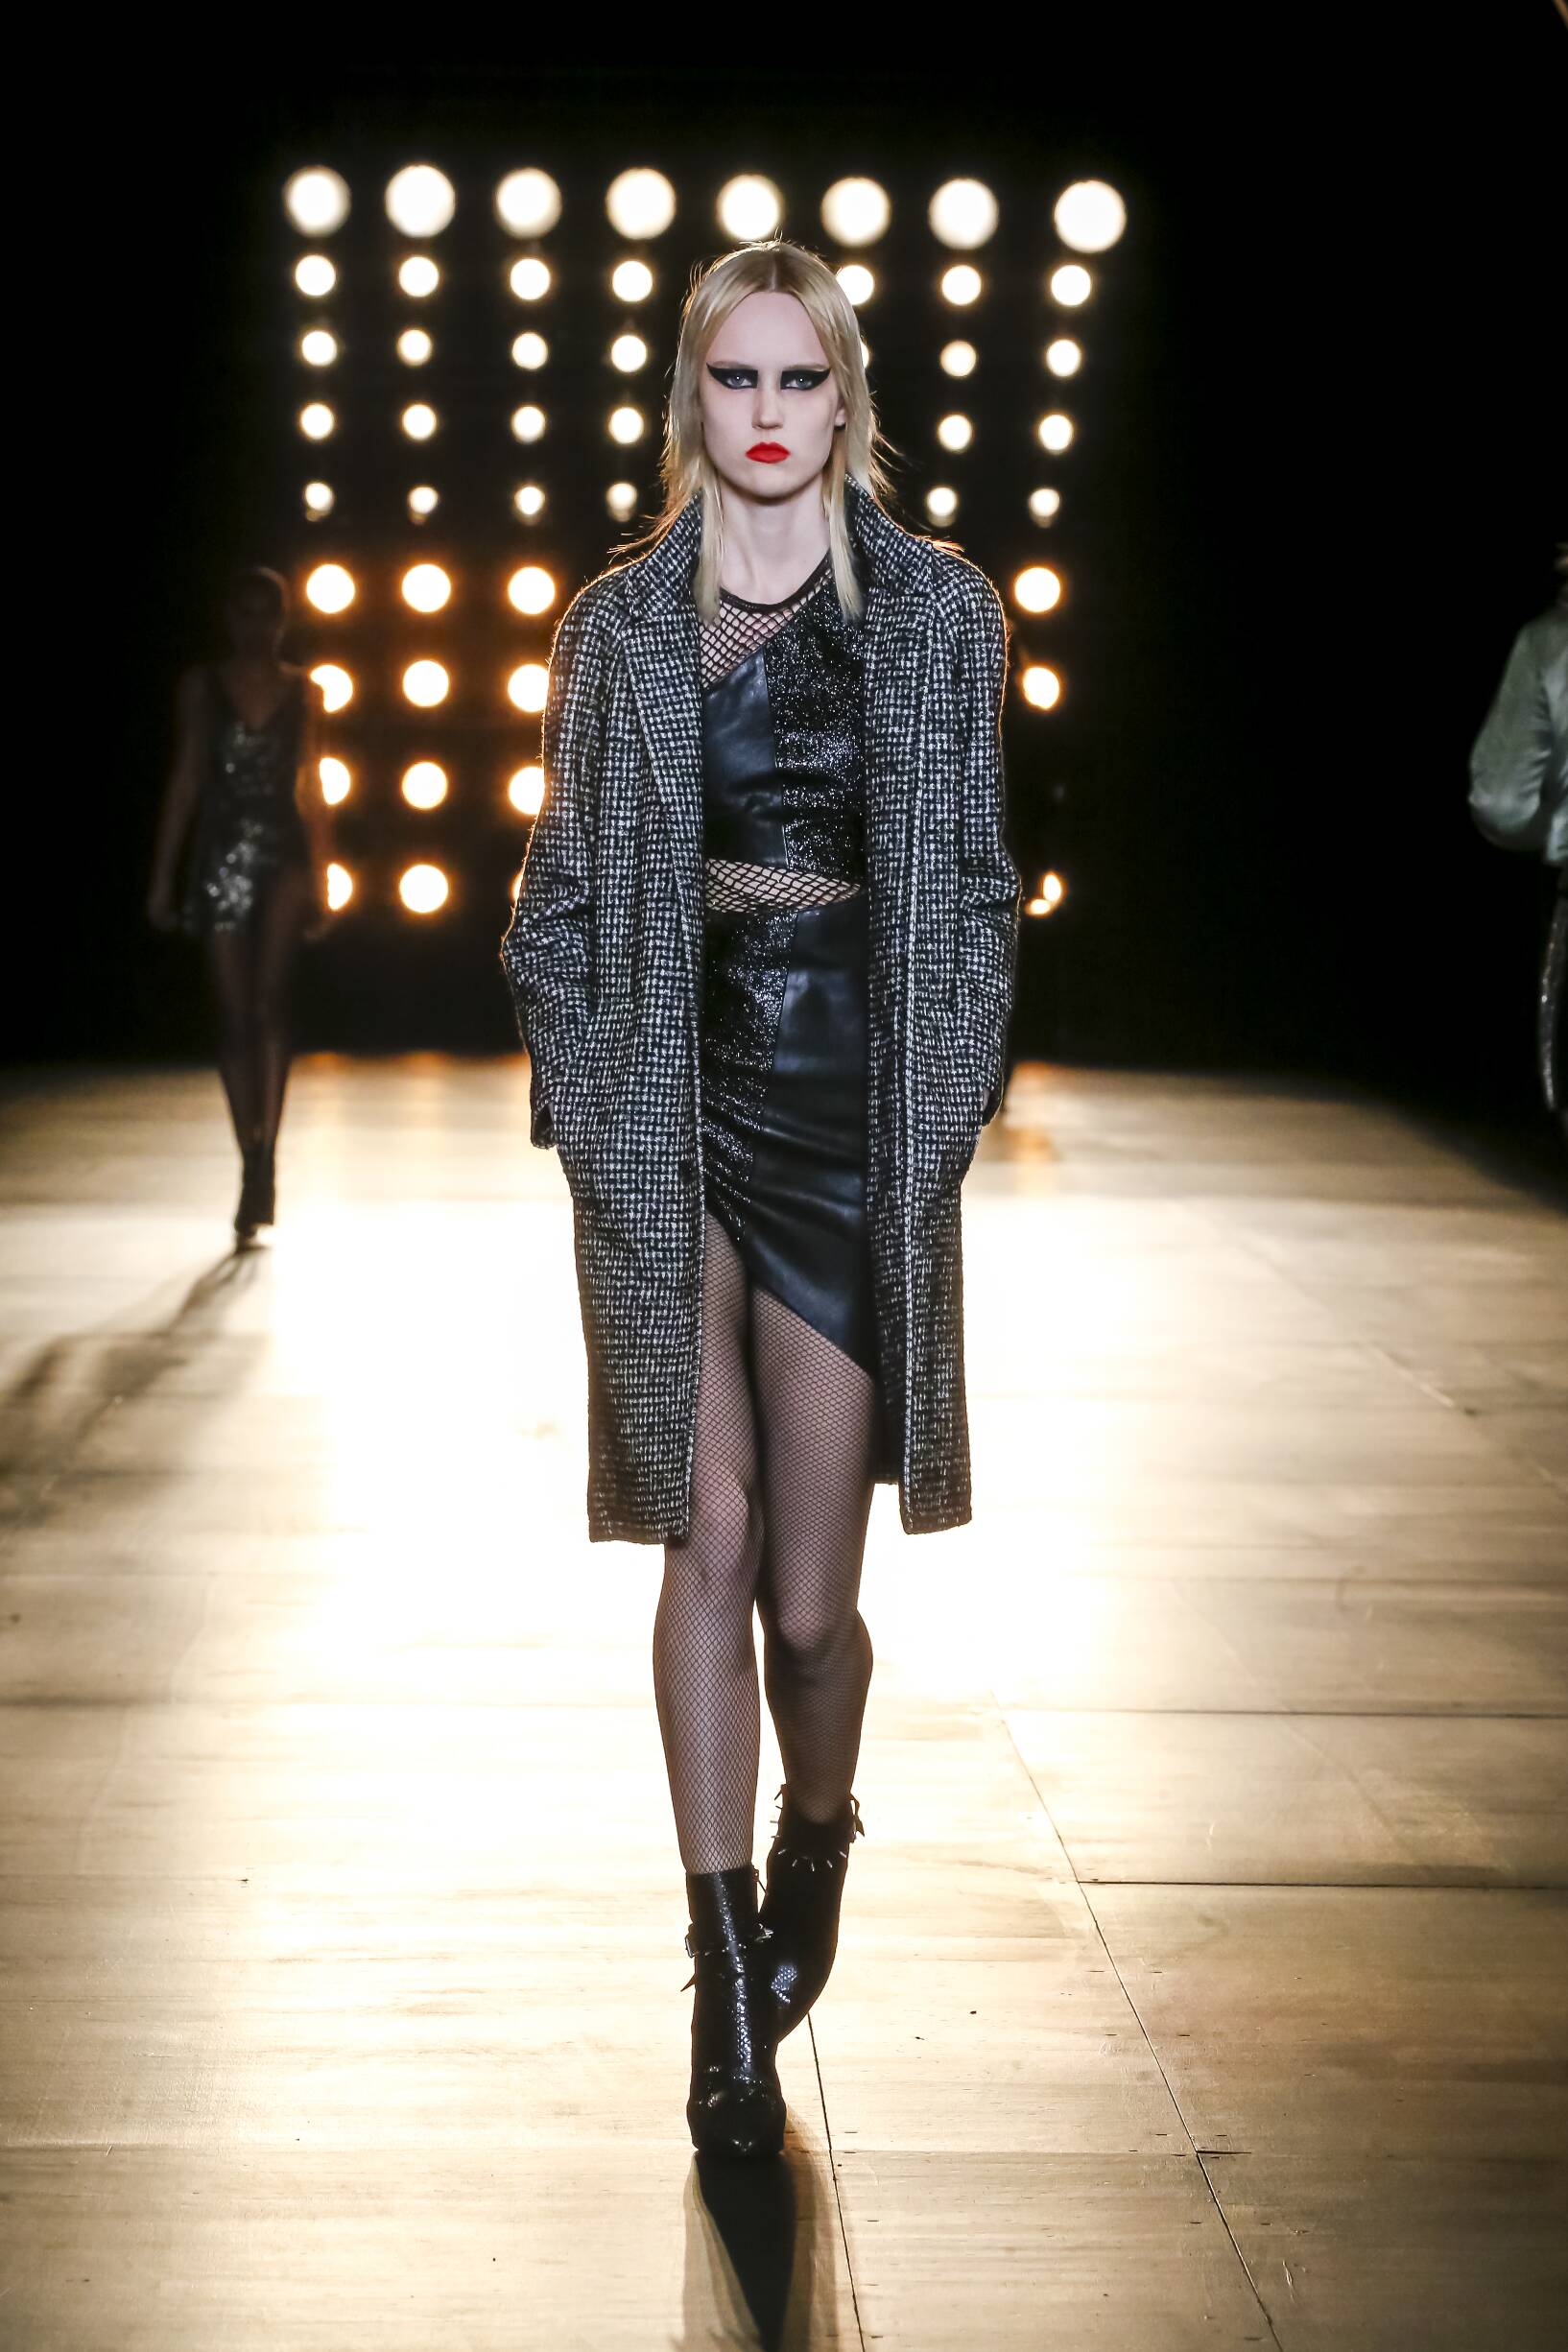 2015 Fashion Woman Model Saint Laurent Collection Catwalk